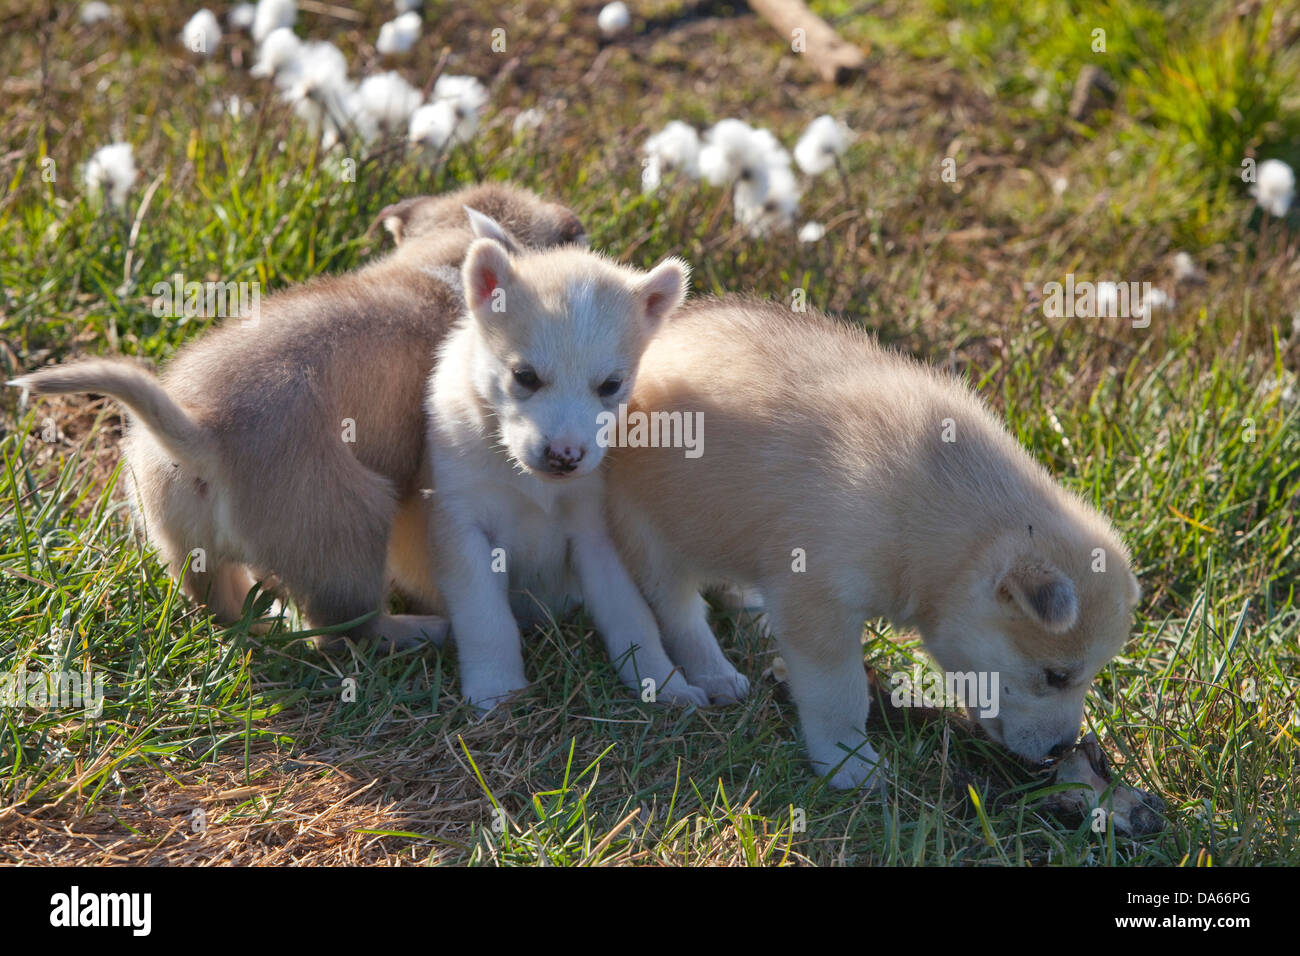 young, sledge dogs, Greenland, East Greenland, animals, animal, dog, - Stock Image